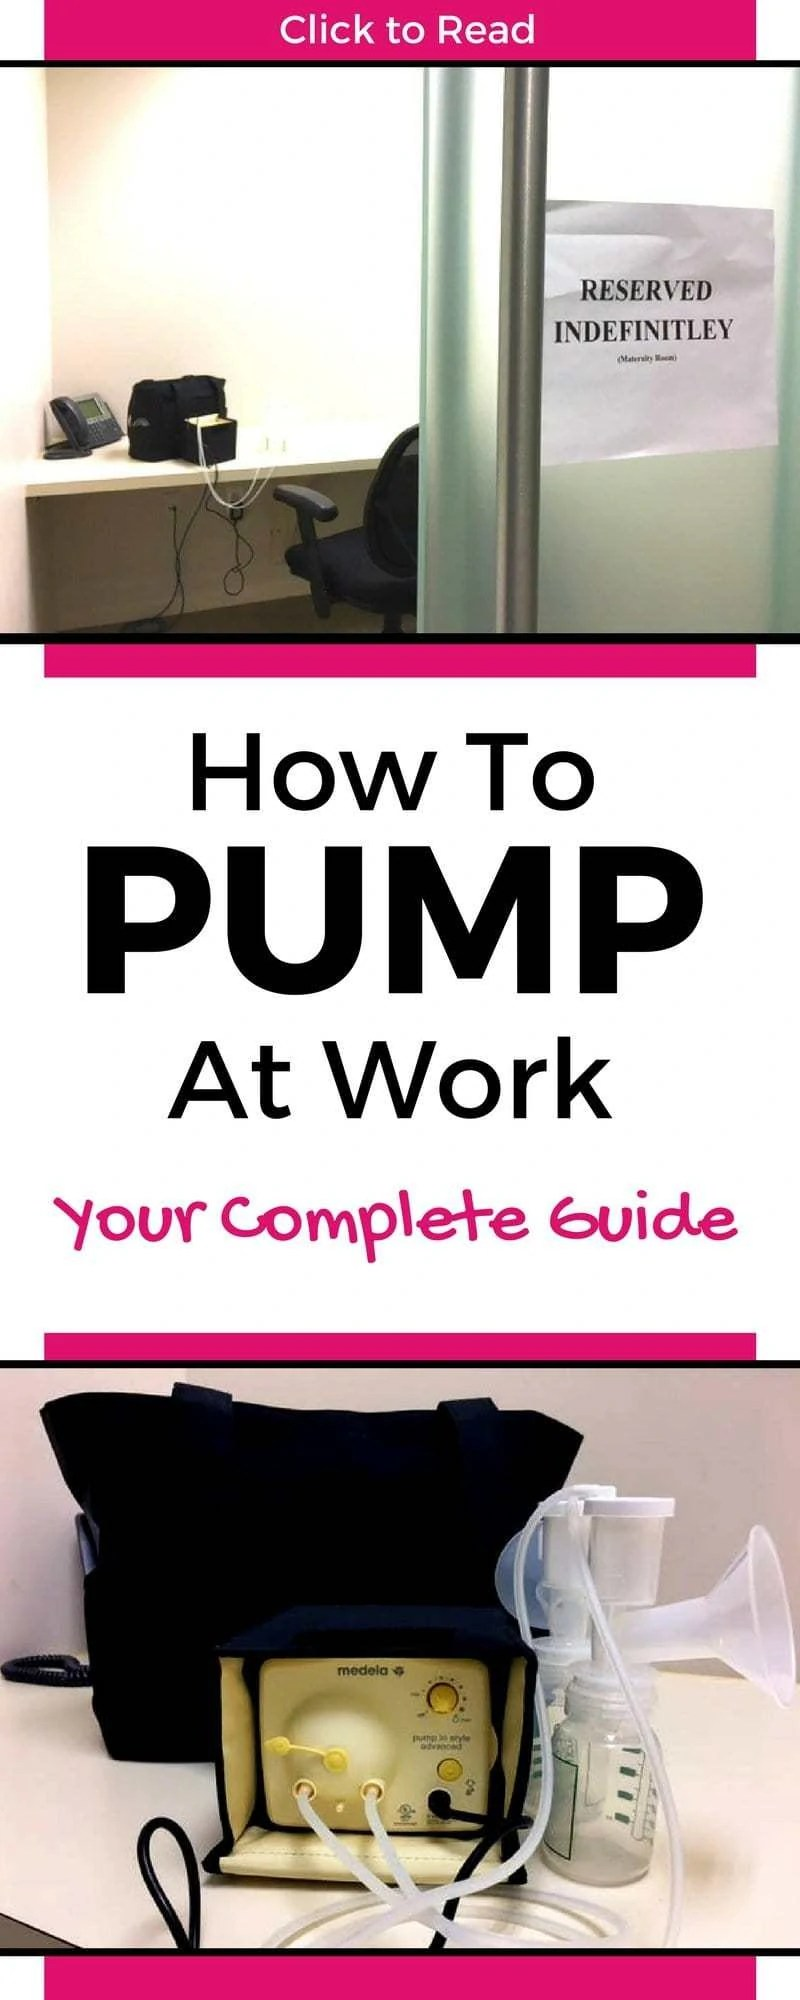 Scared about pumping at work? Don't be! This guide will tell you all you need to know so you can be successful! ! Covers Pumping schedule, Pumping milk, Pumping at work tips, Pumping at work schedule and Pumping at work essentials! Plus get some free downloadable resources & tools!